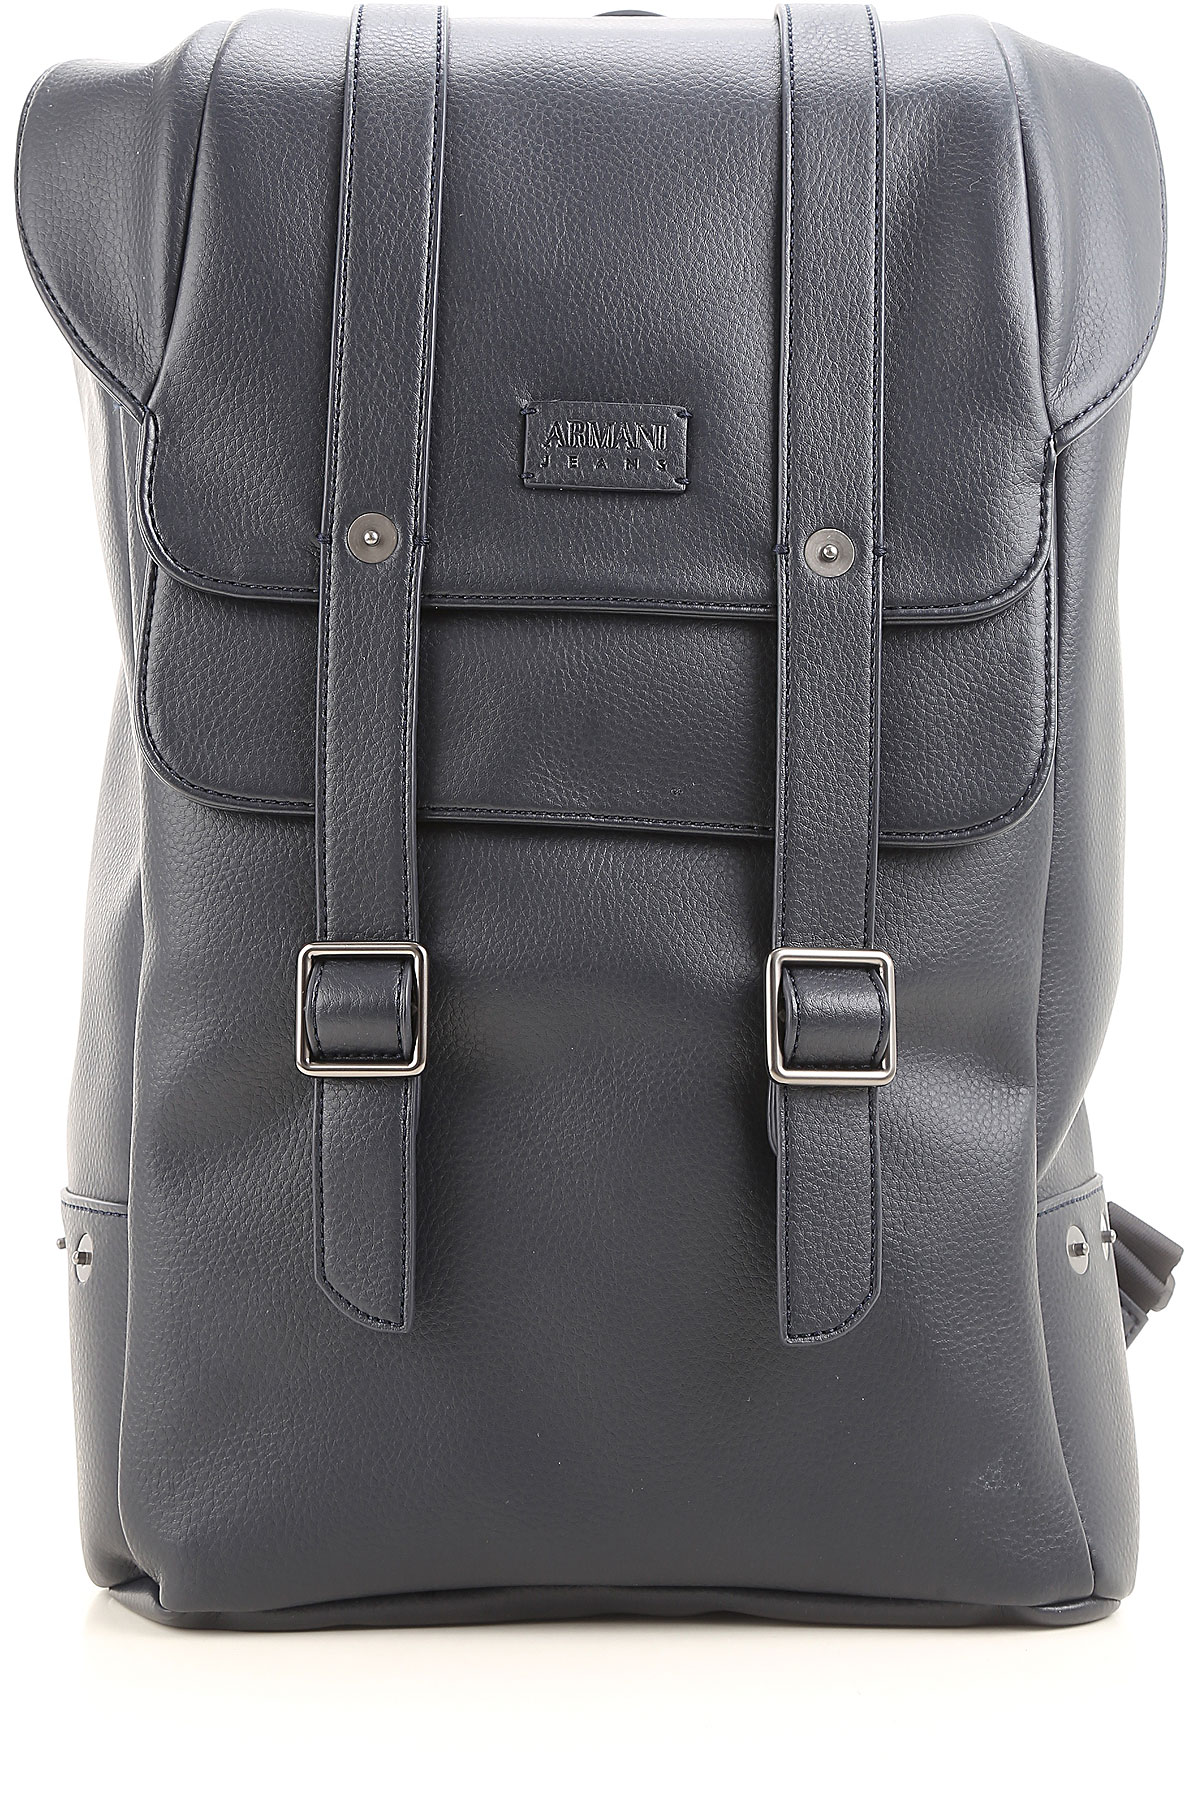 Image of Armani Jeans Backpack for Men On Sale, Blue, Leather, 2017